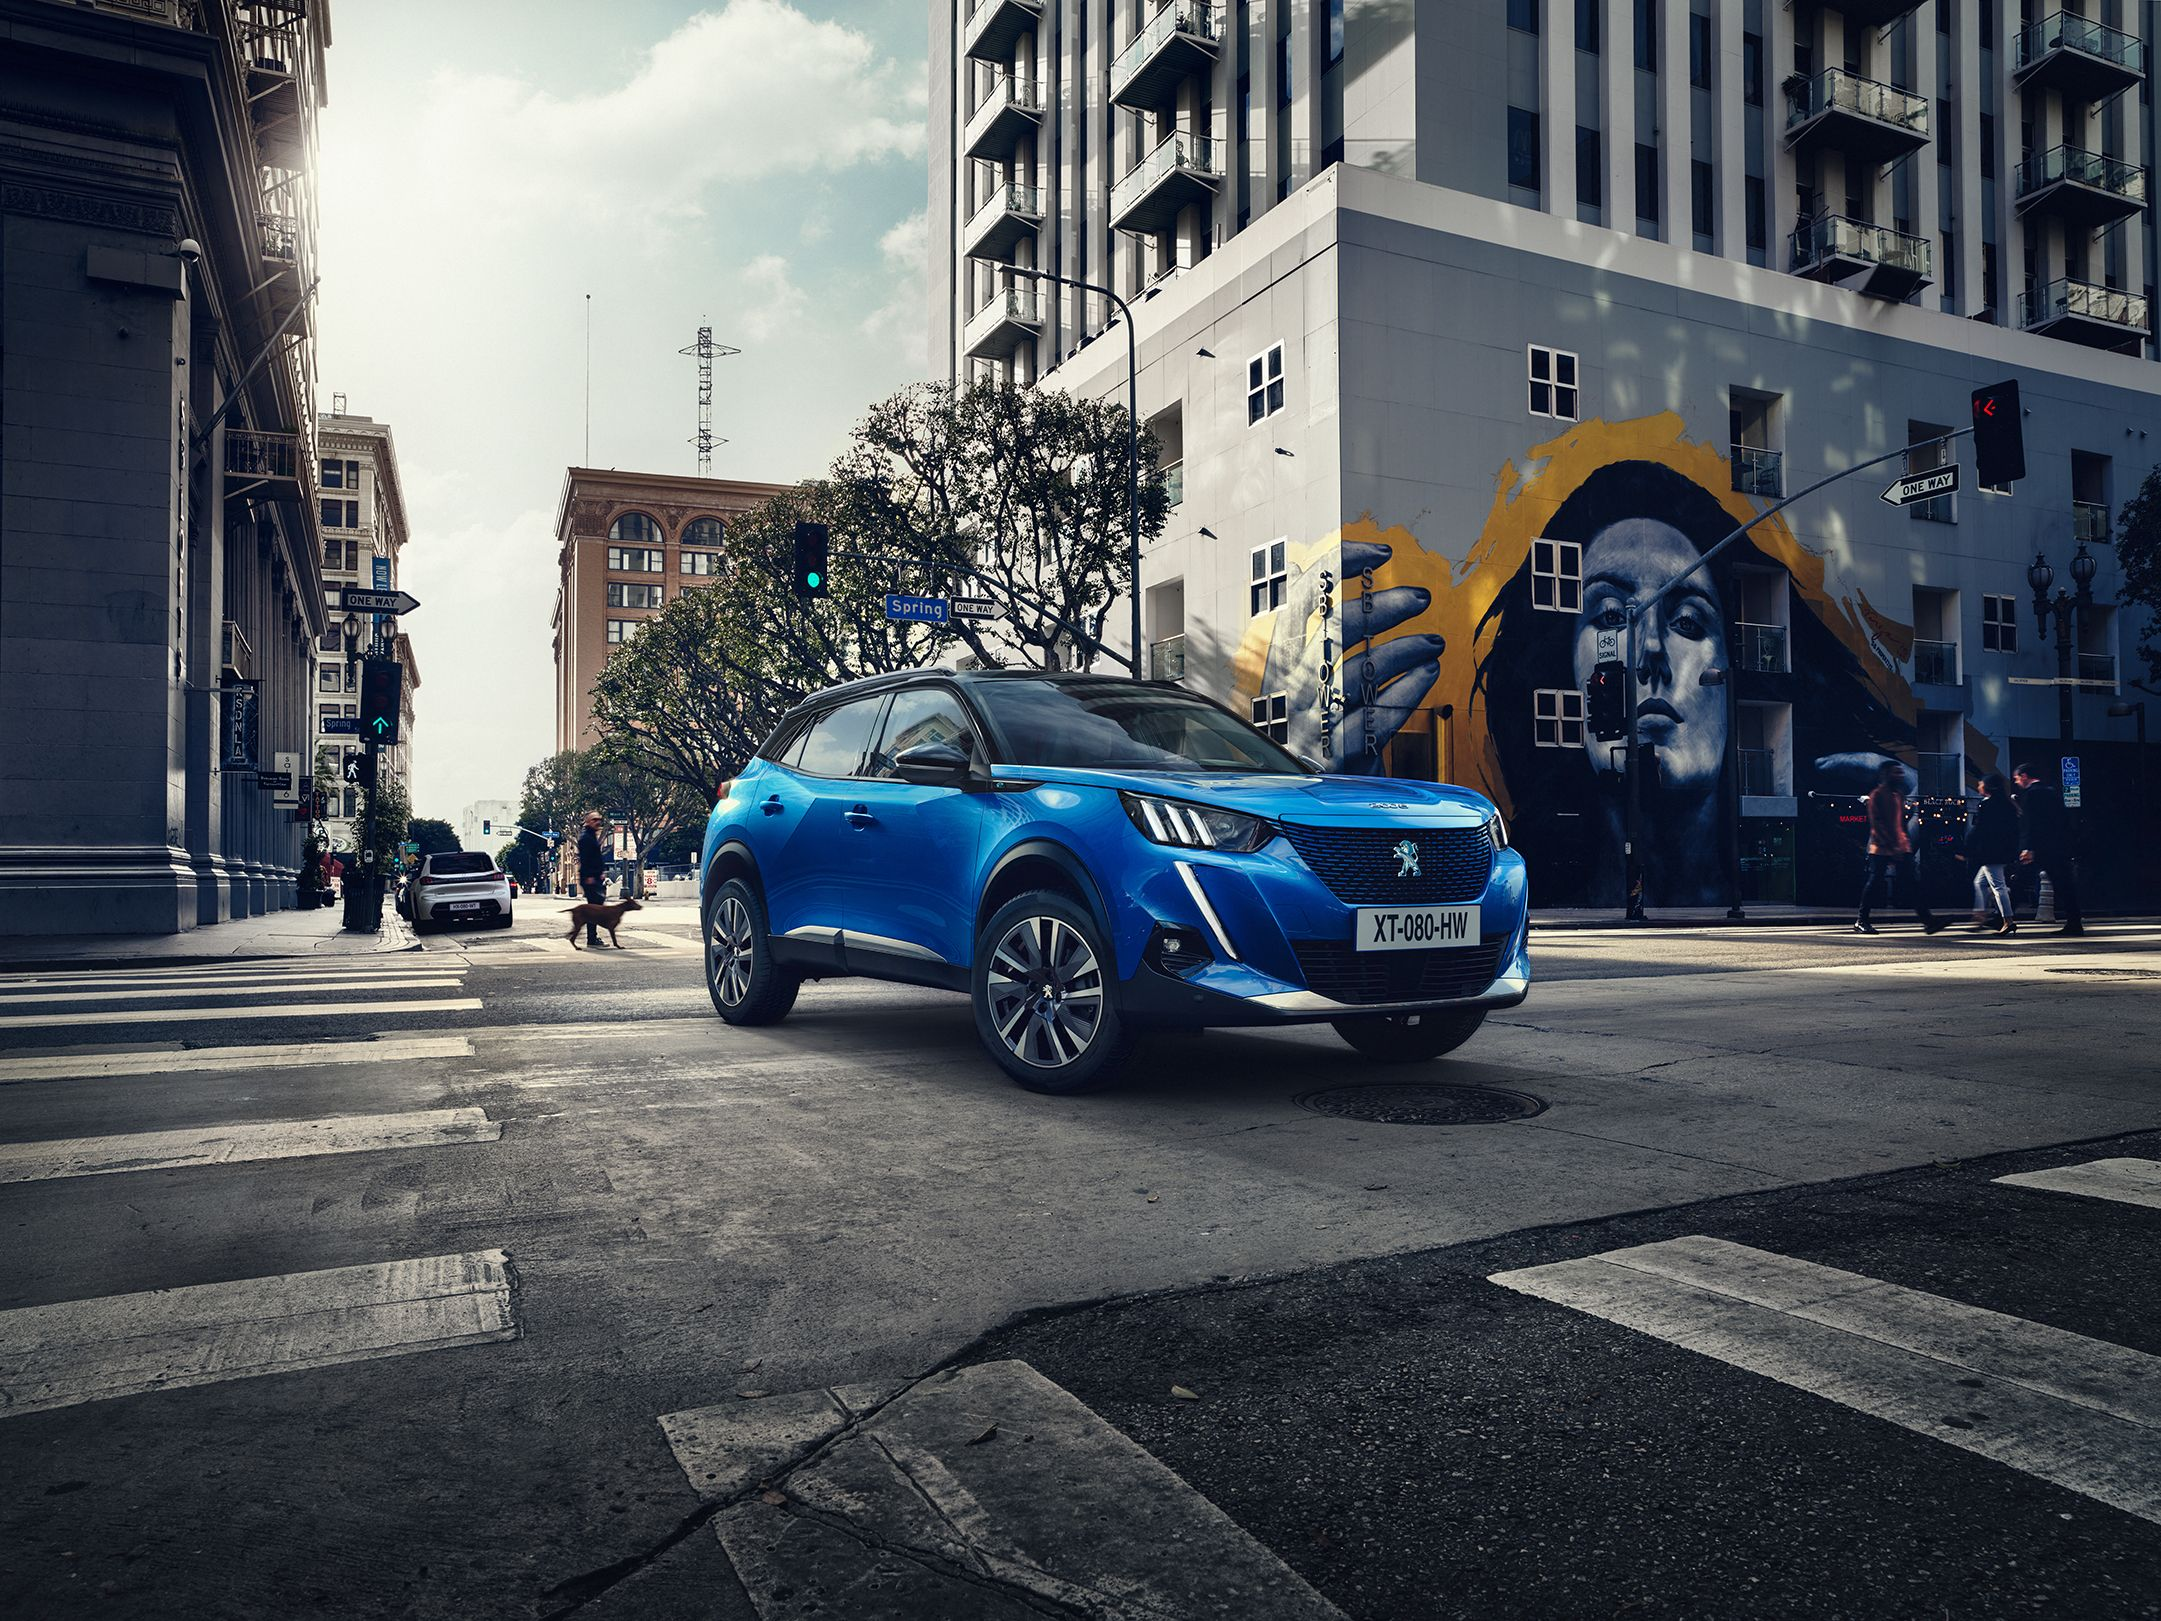 New Peugeot 2008 Crossover – Available with an Electric Powertrain